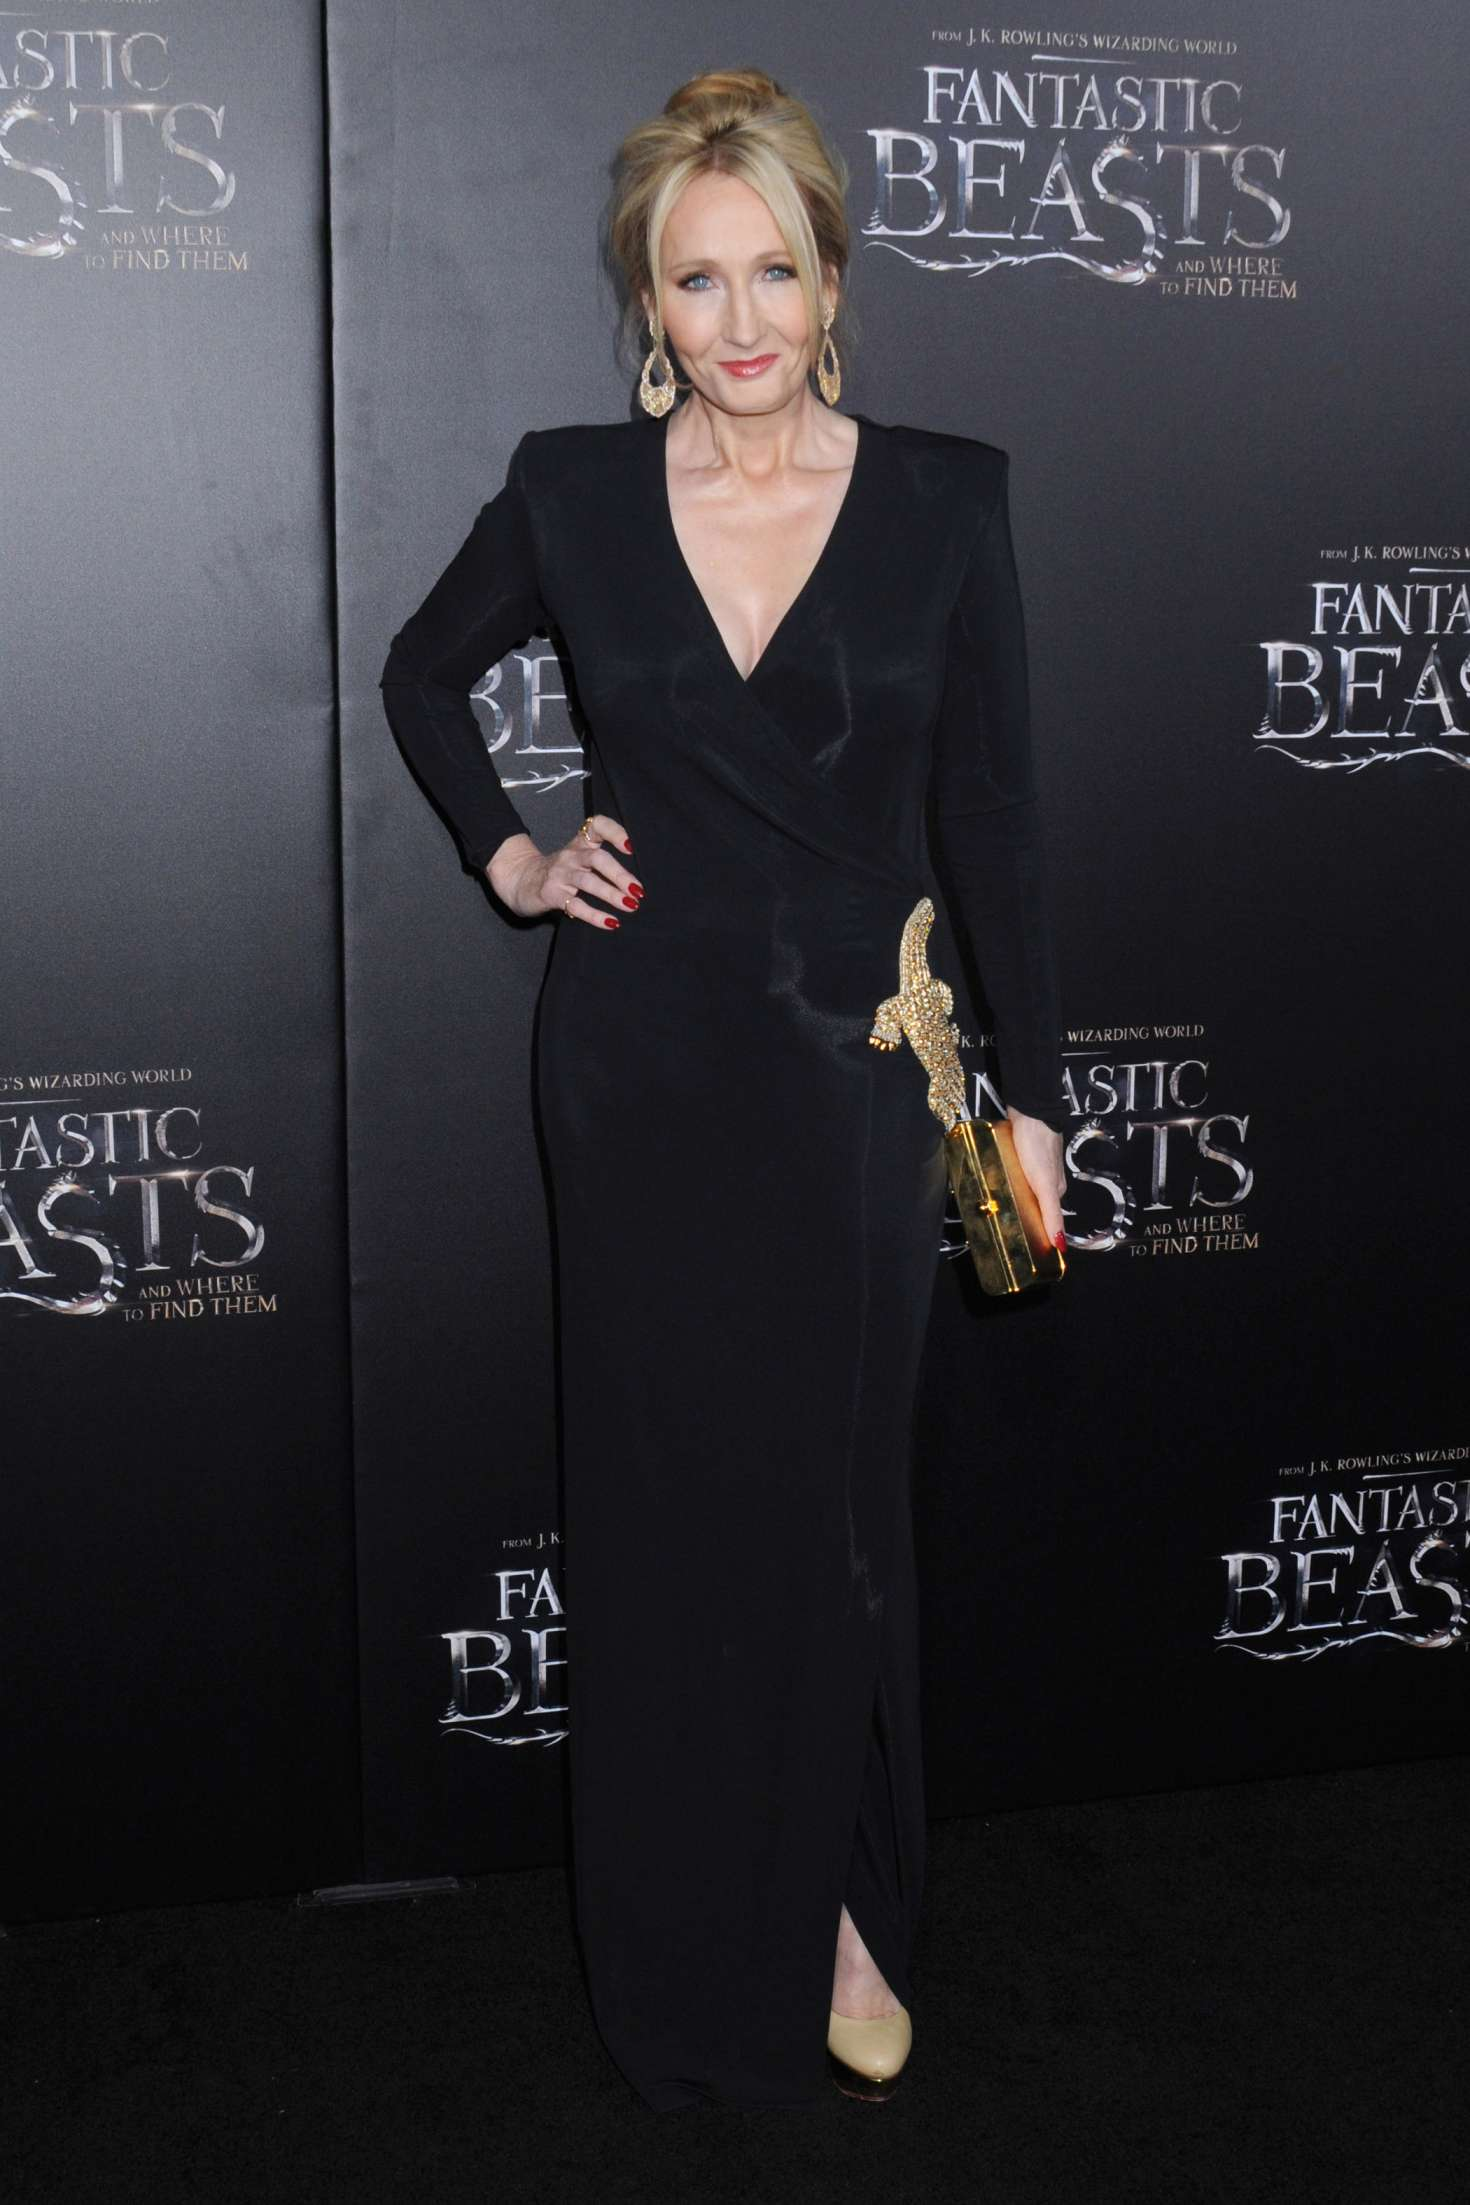 Jk Rowling Fantastic Beasts And Where To Find Them Premiere 07